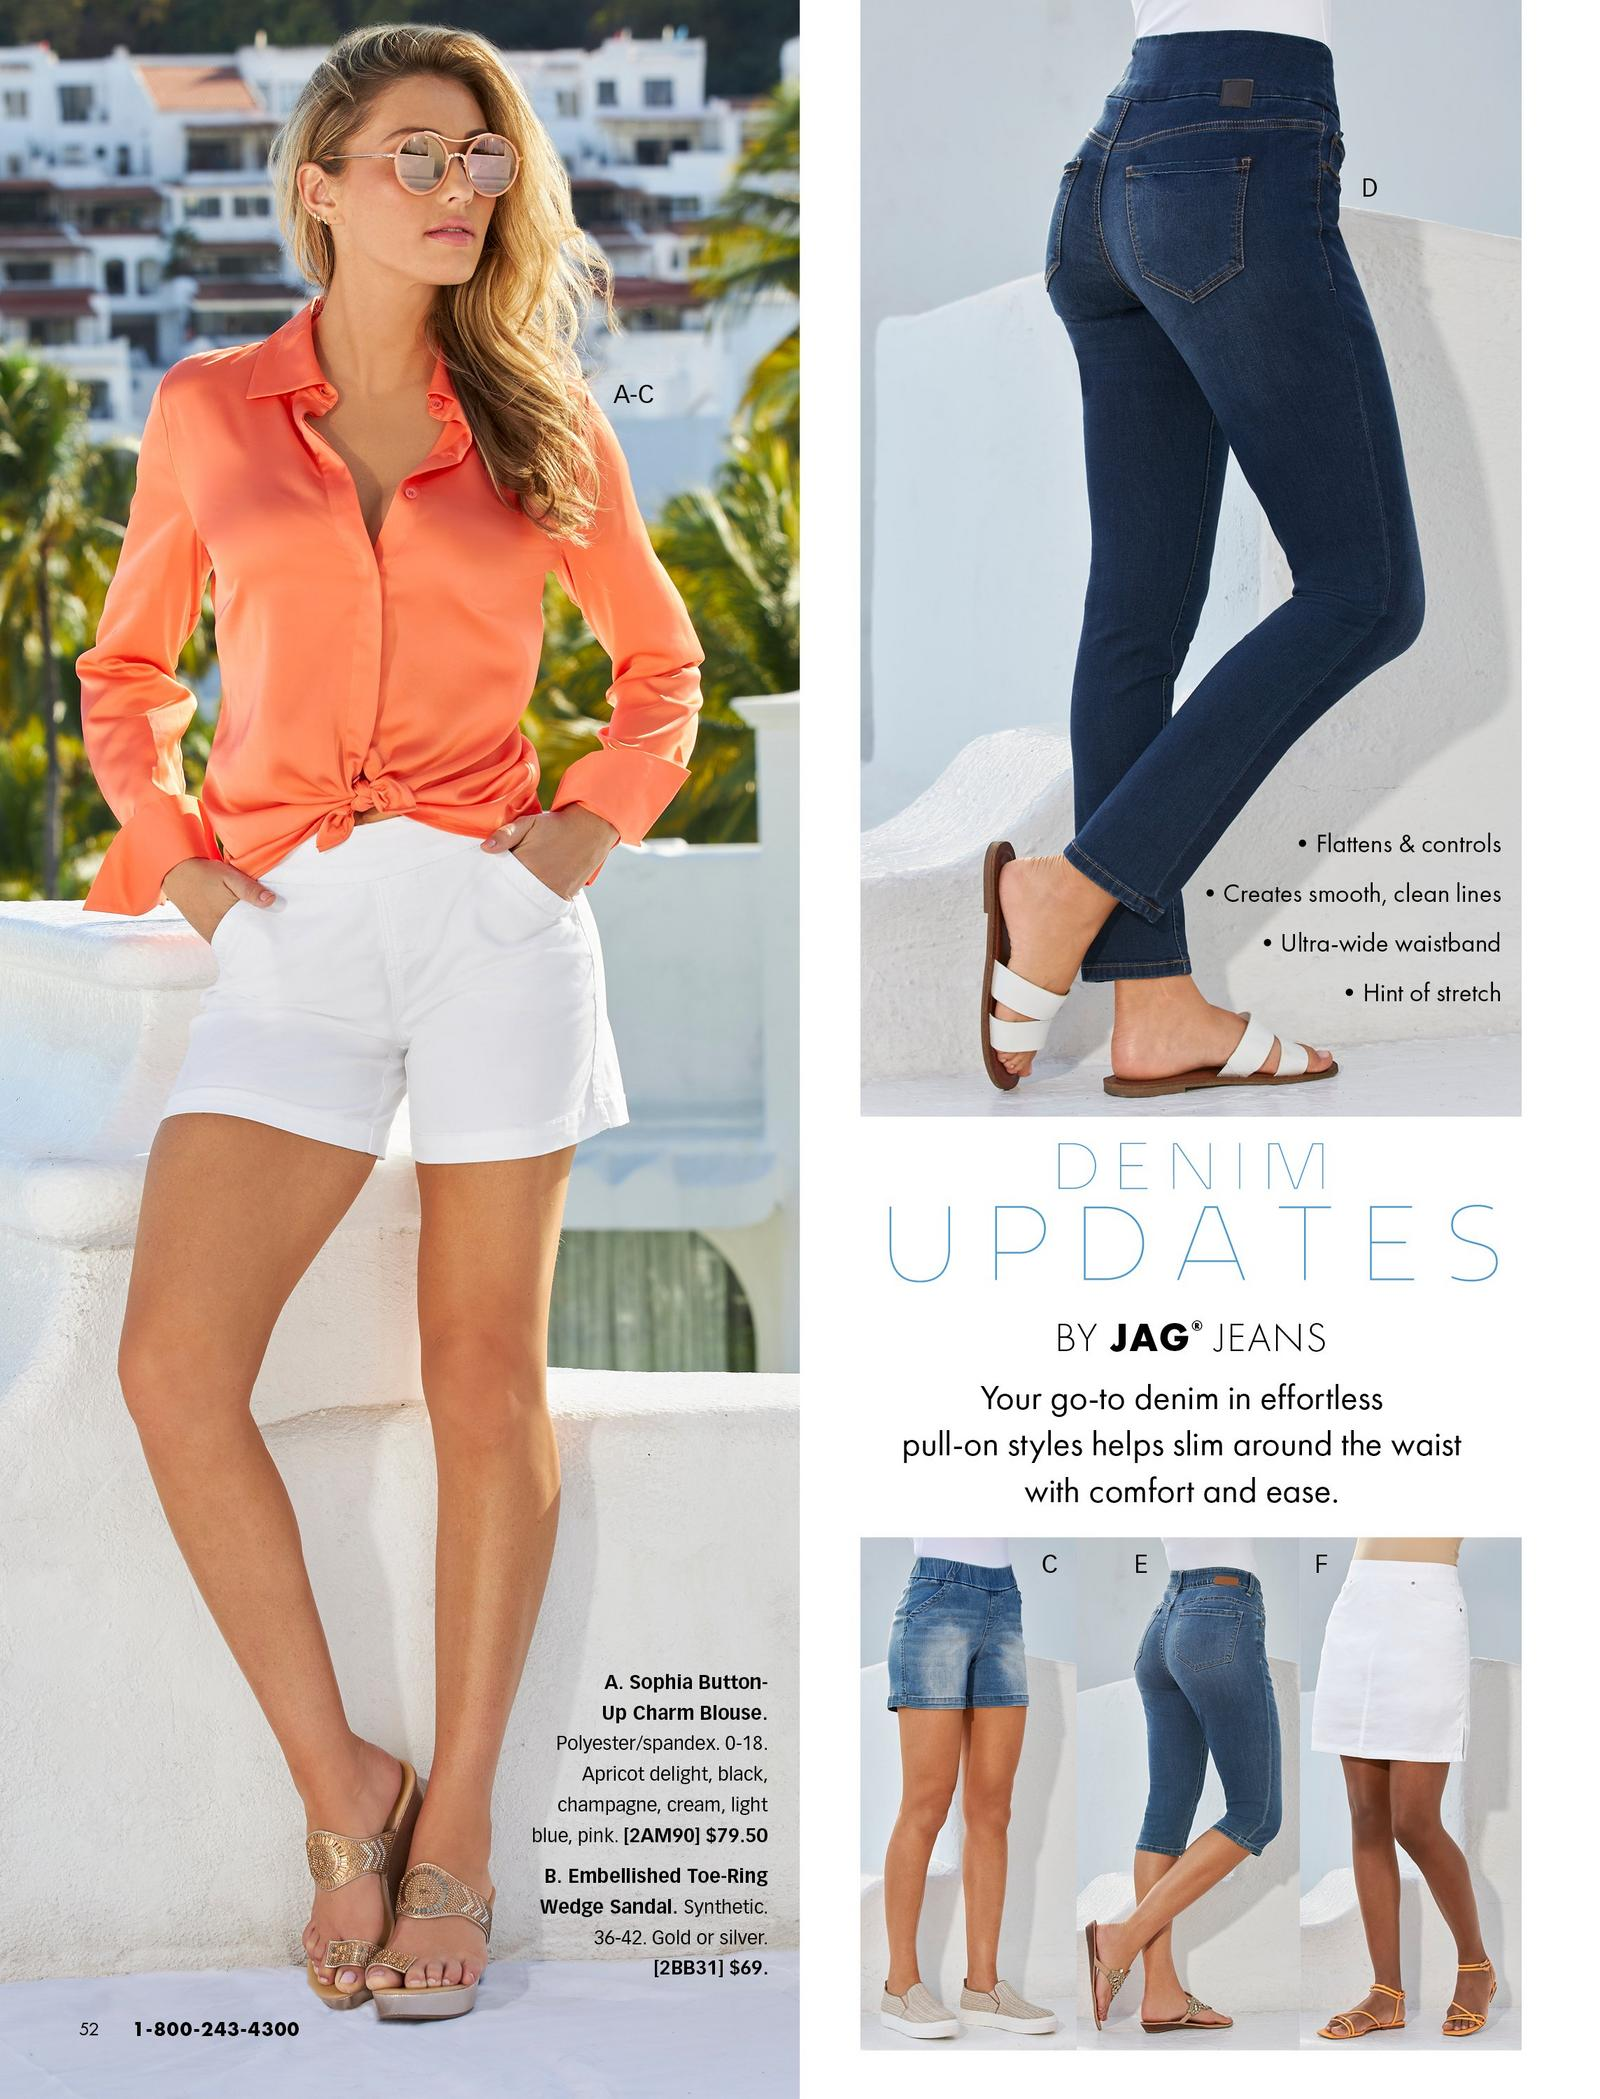 left model wearing an orange button-up long-sleeve charm top, white shorts, gold wedges, and sunglasses. right top model wearing jag jeans in a dark wash and white double-strap sandals. also shown: jag shorts, capris, and skort.